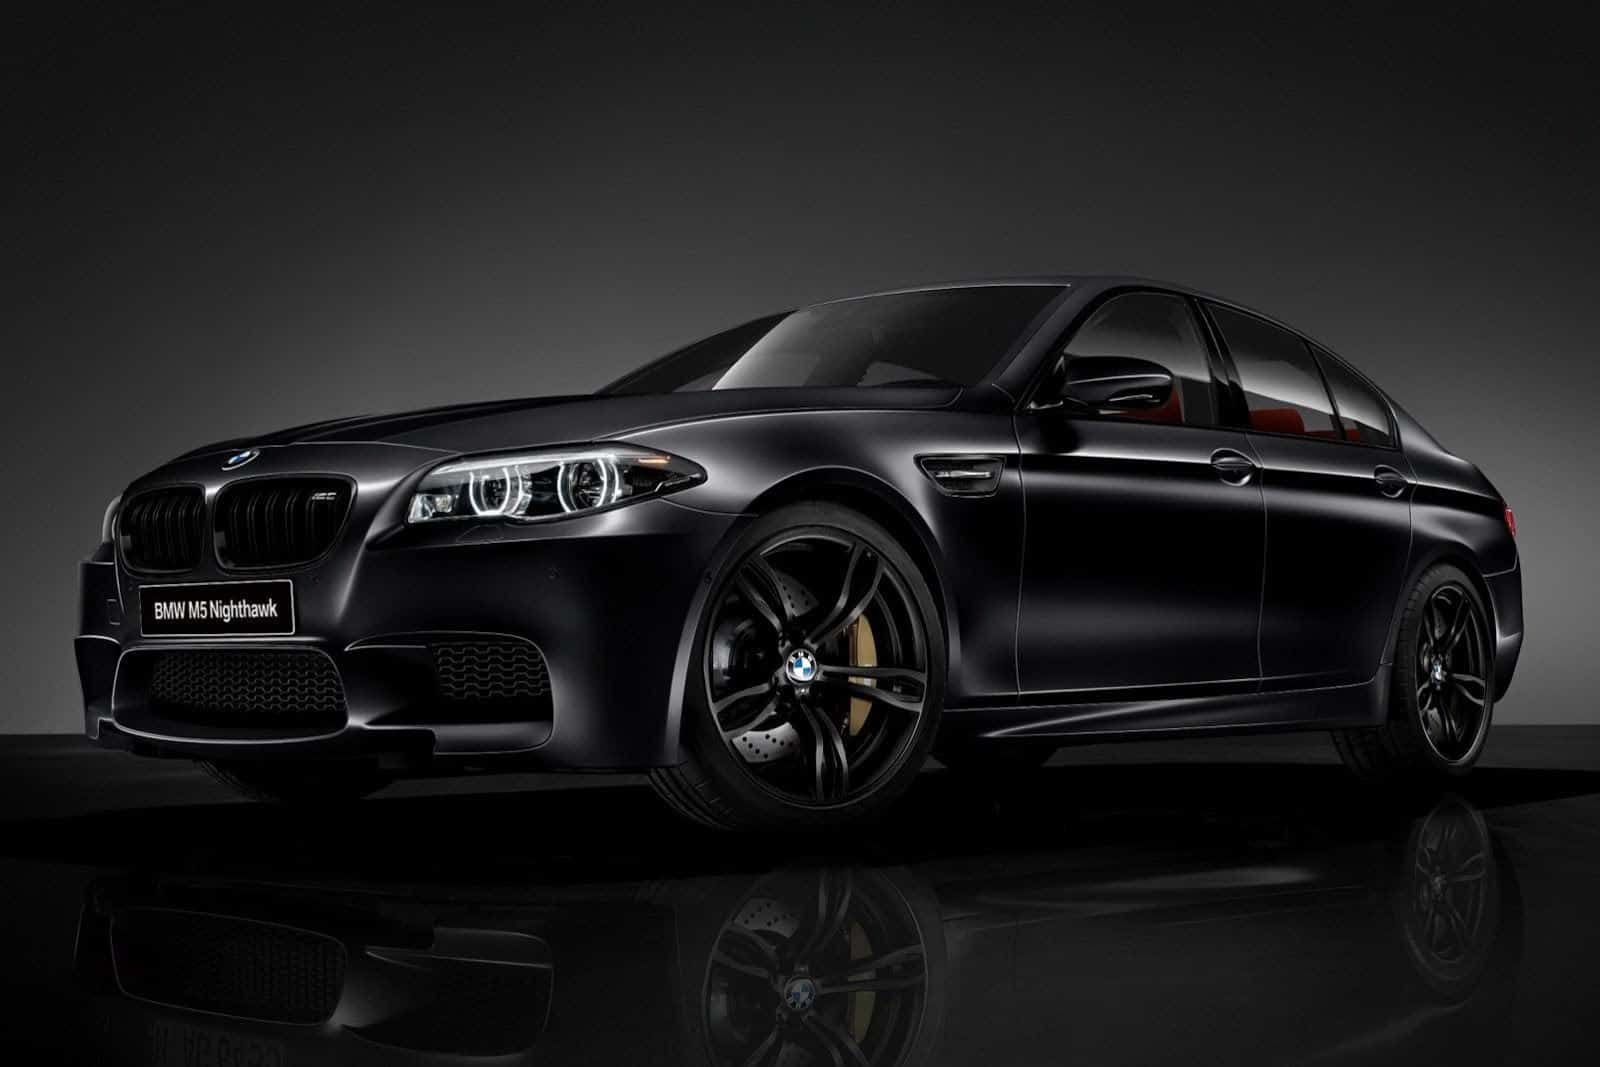 BMW M5 Nighthawk Special Edition